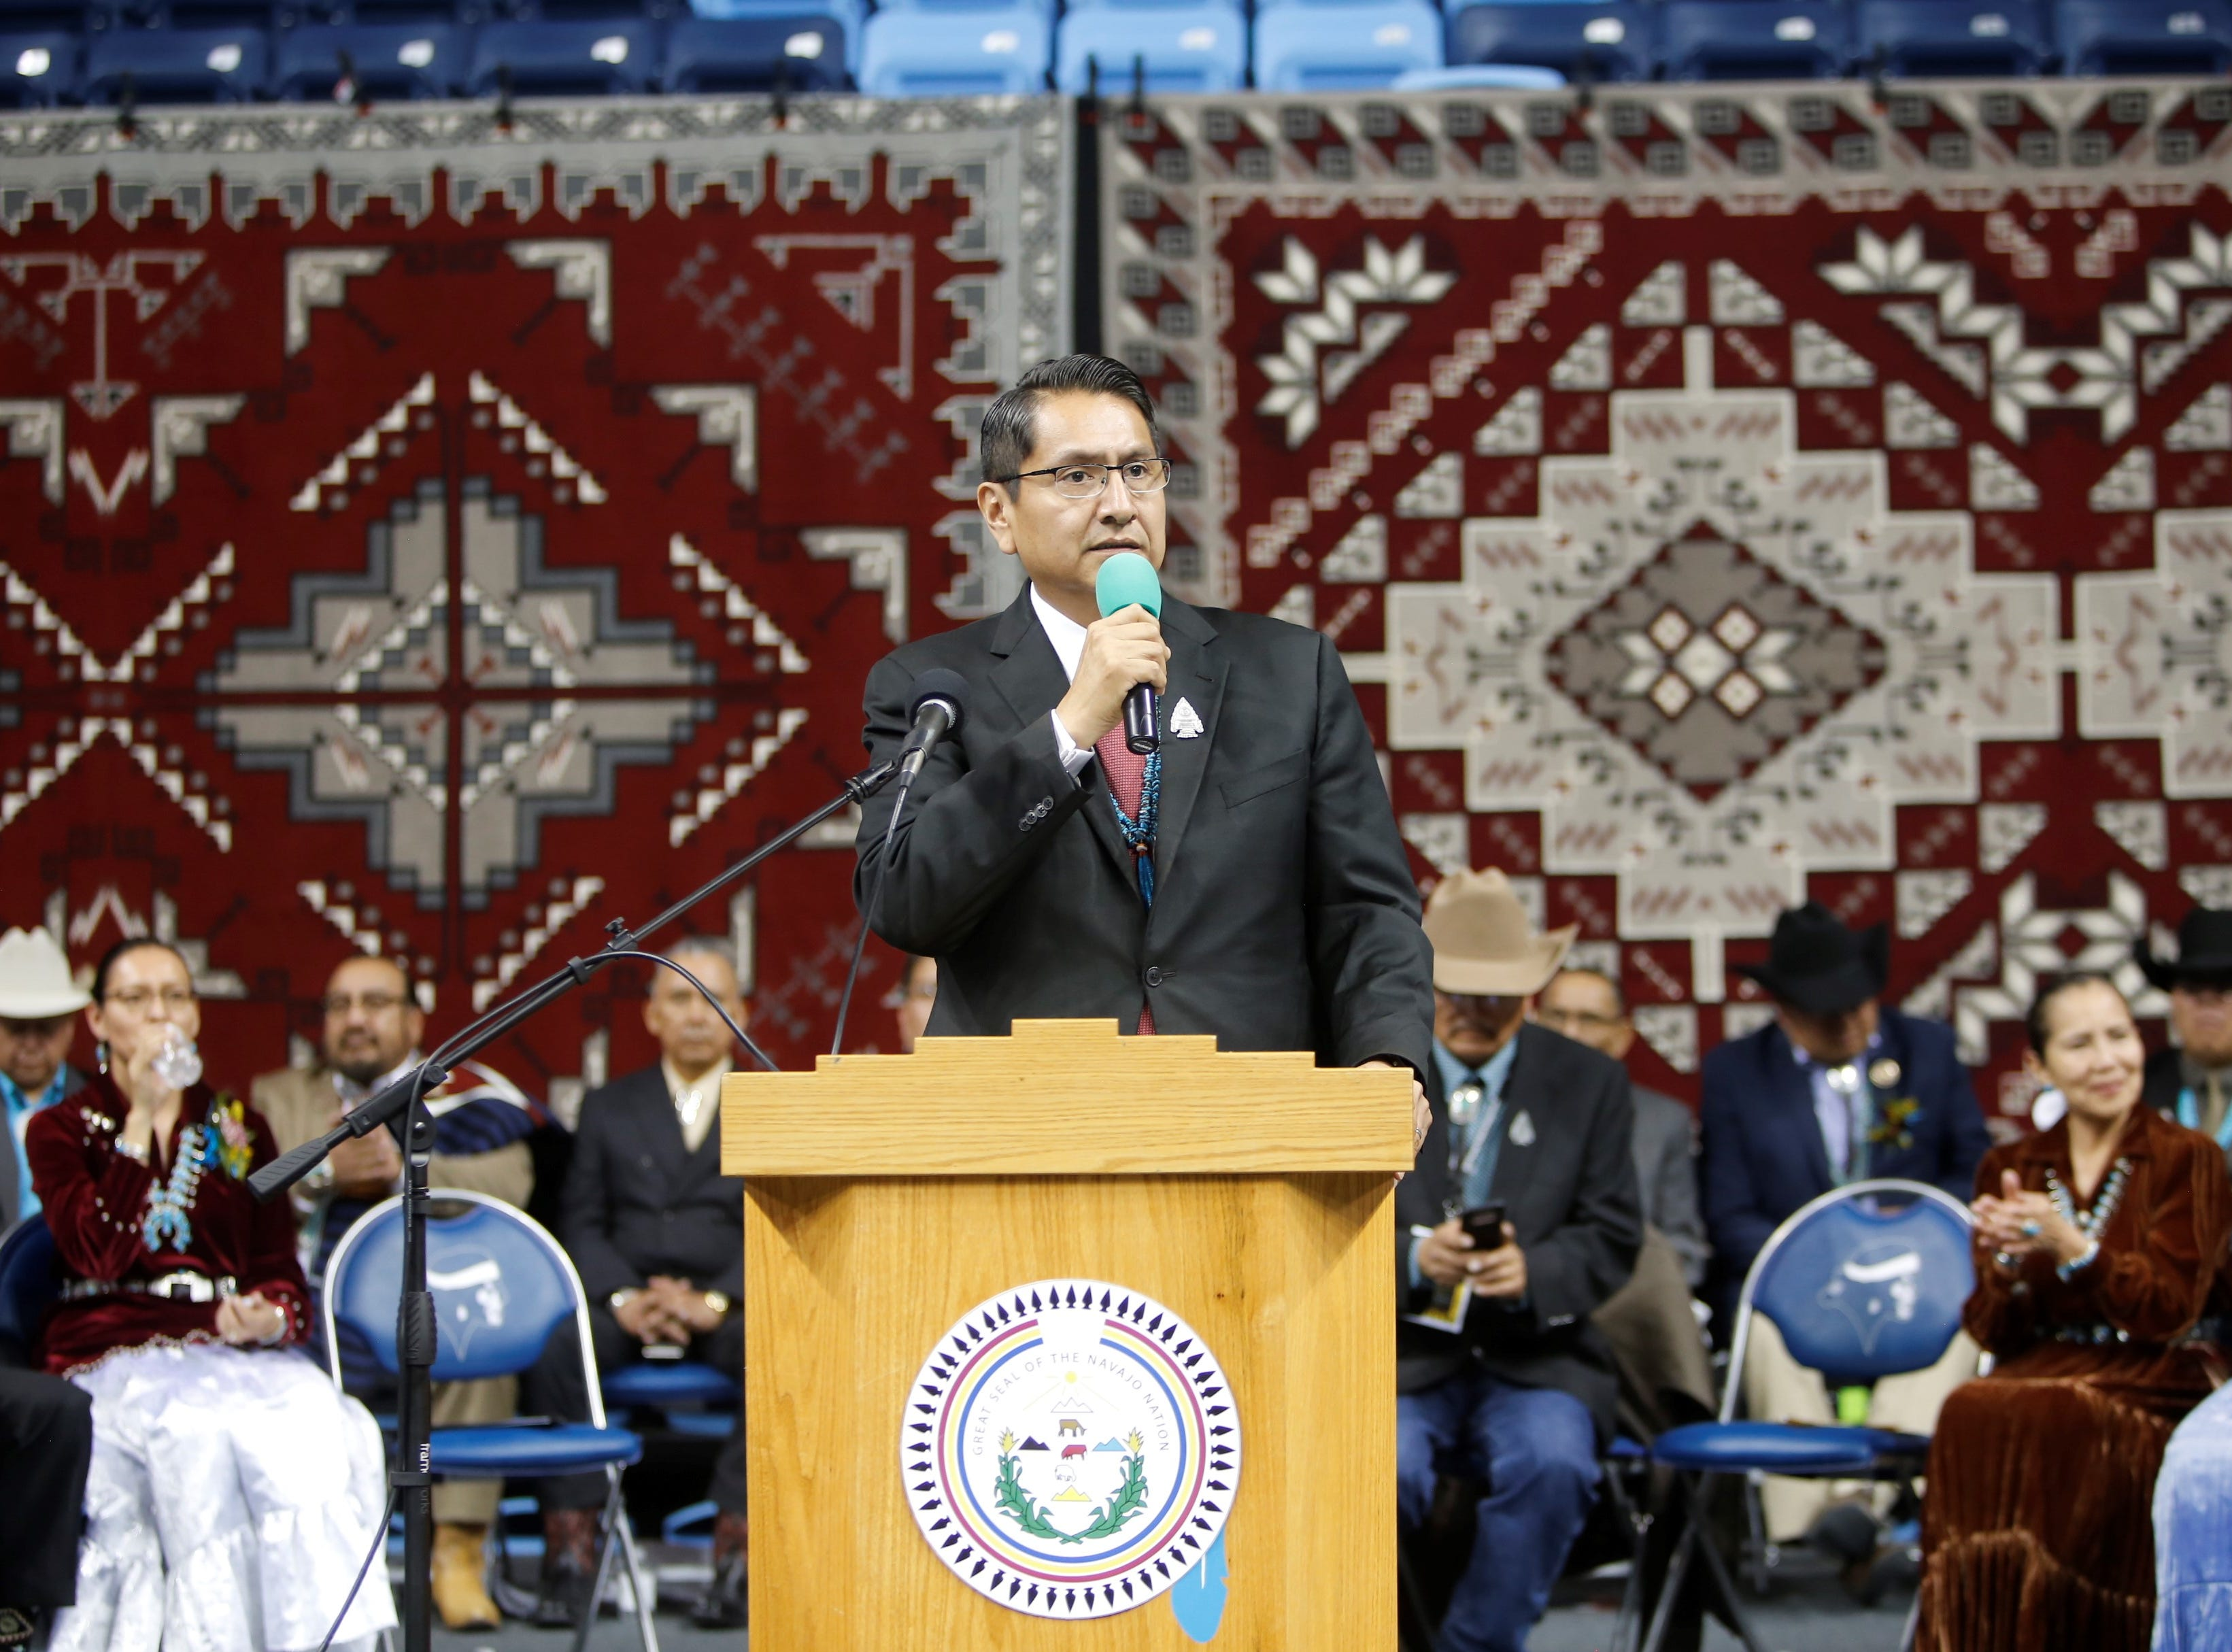 Navajo Nation President Jonathan Nez gives his inaugural address after taking the oath of office Tuesday afternoon at the Bee Hółdzil Fighting Scouts Events Center in Fort Defiance, Ariz.